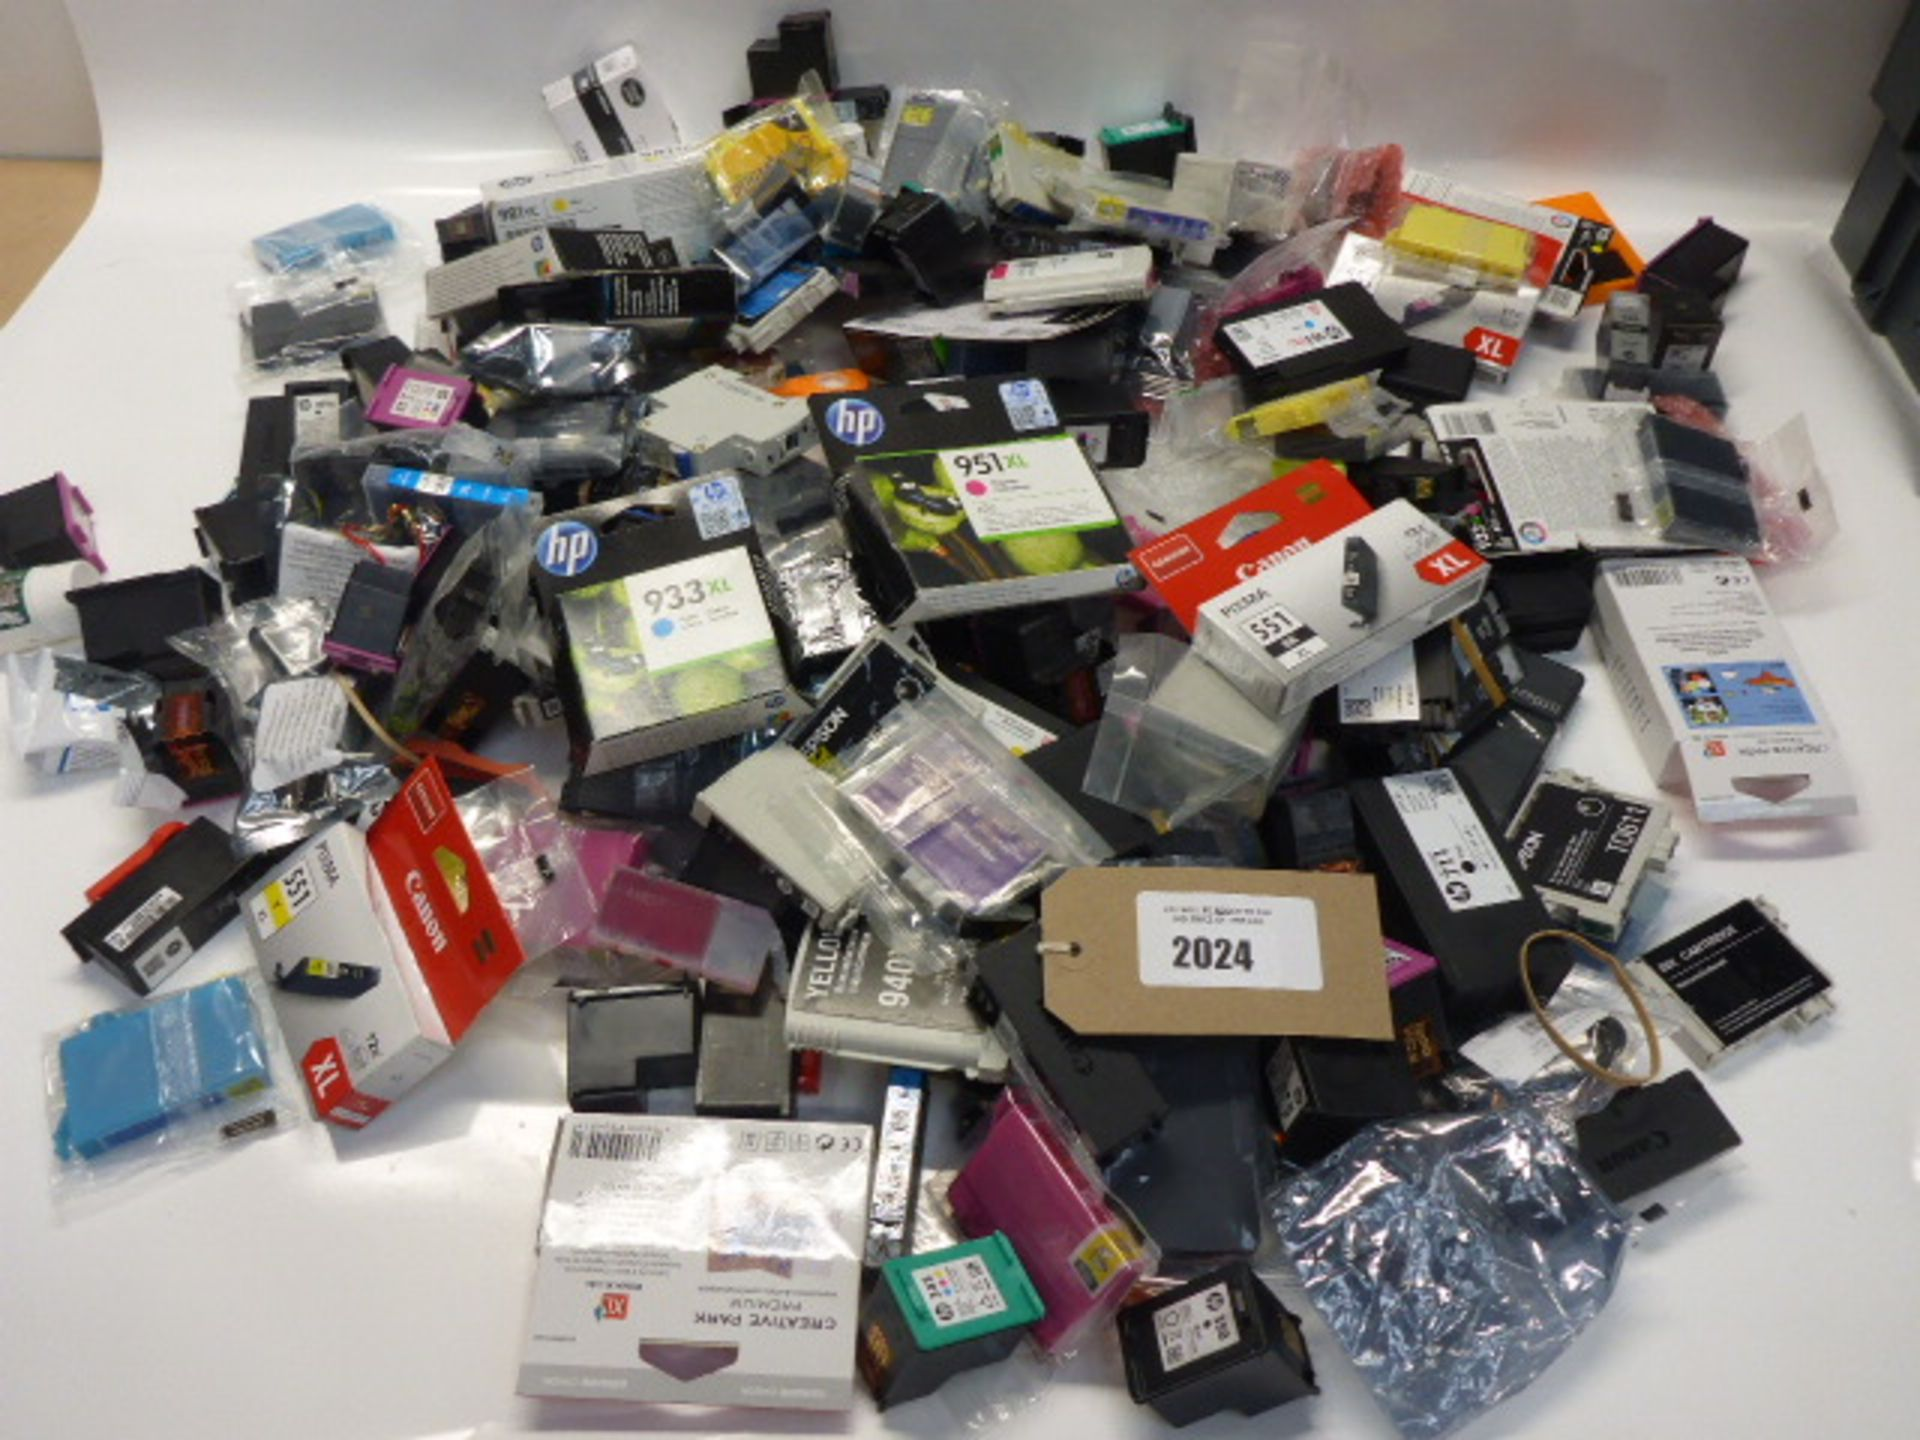 Lot 2024 - Bag of branded and unbranded replacement printer inks cartridges, to include Canon. HP, etc.